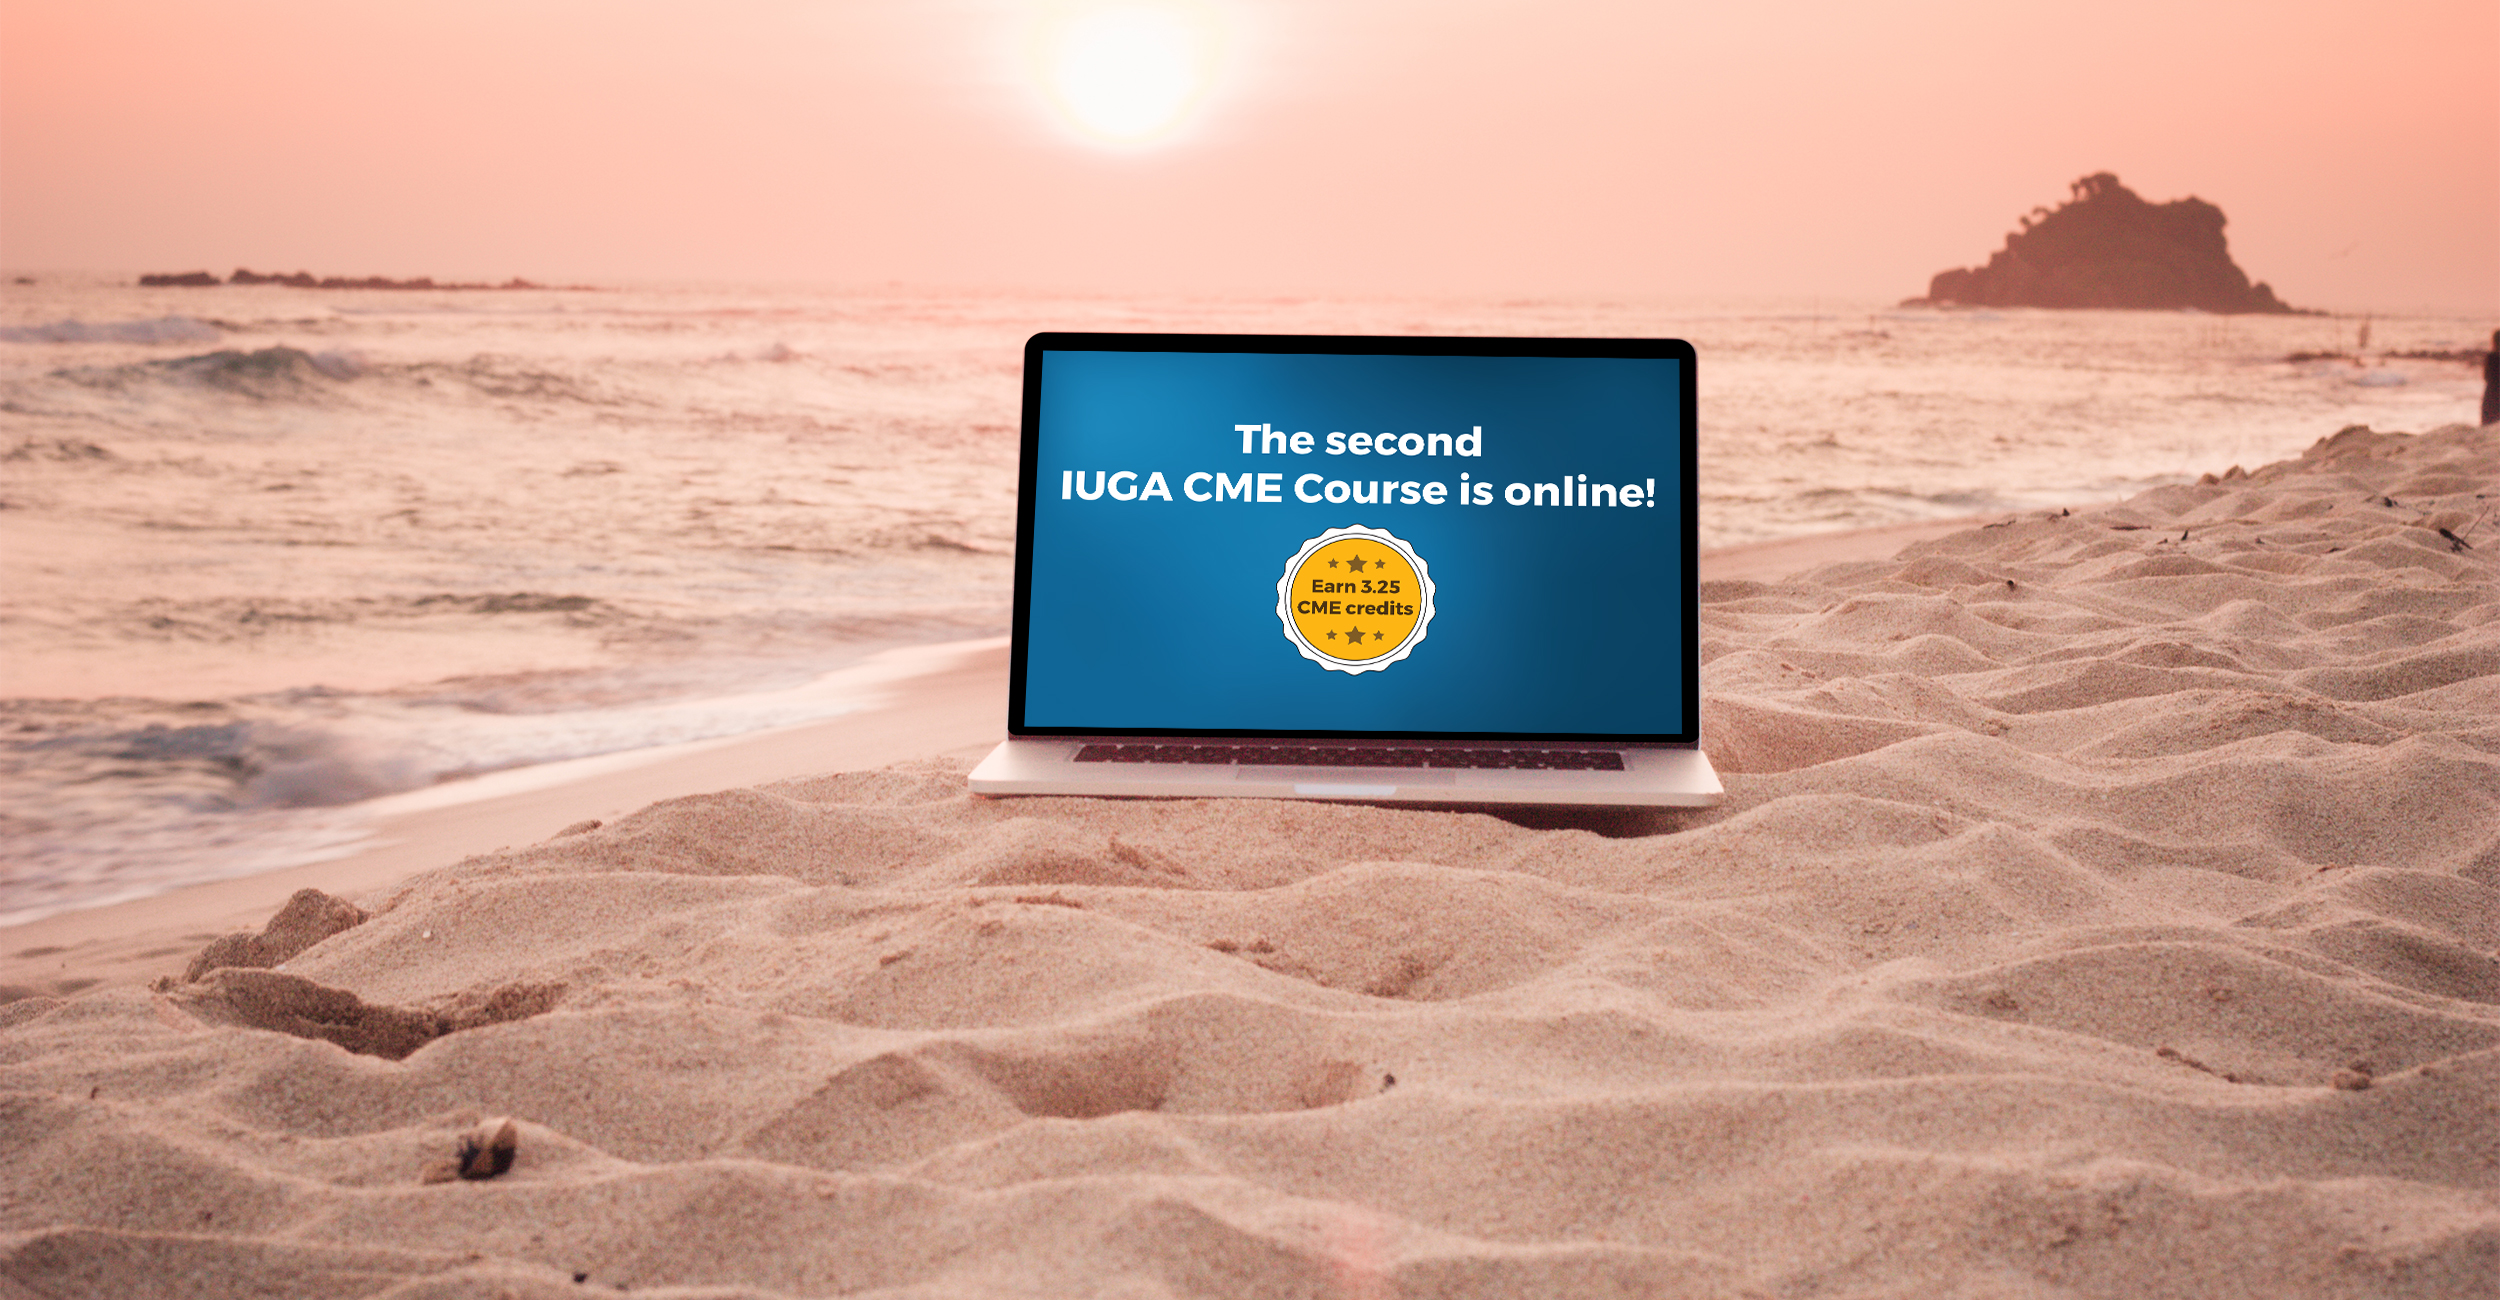 IUGA Academy New CME Course Available